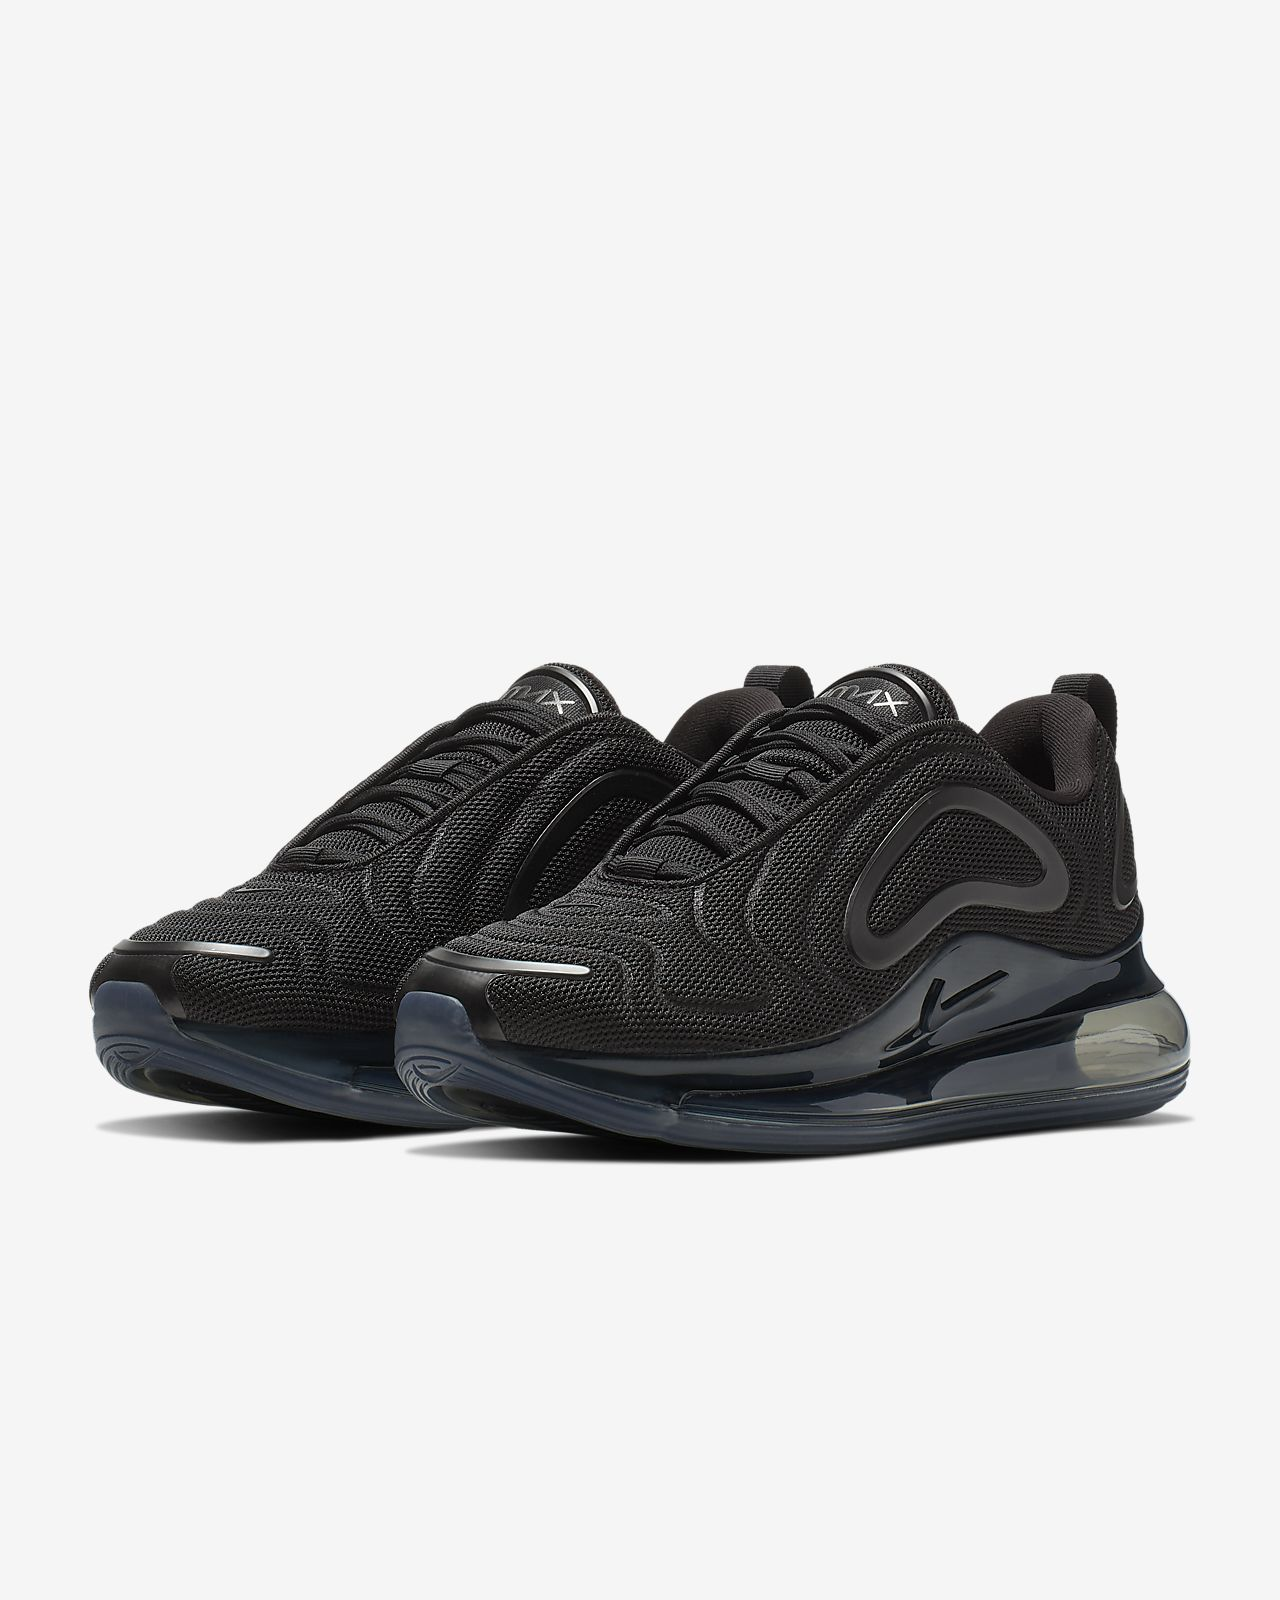 Nike Air Max 720 Damenschuh. Nike AT